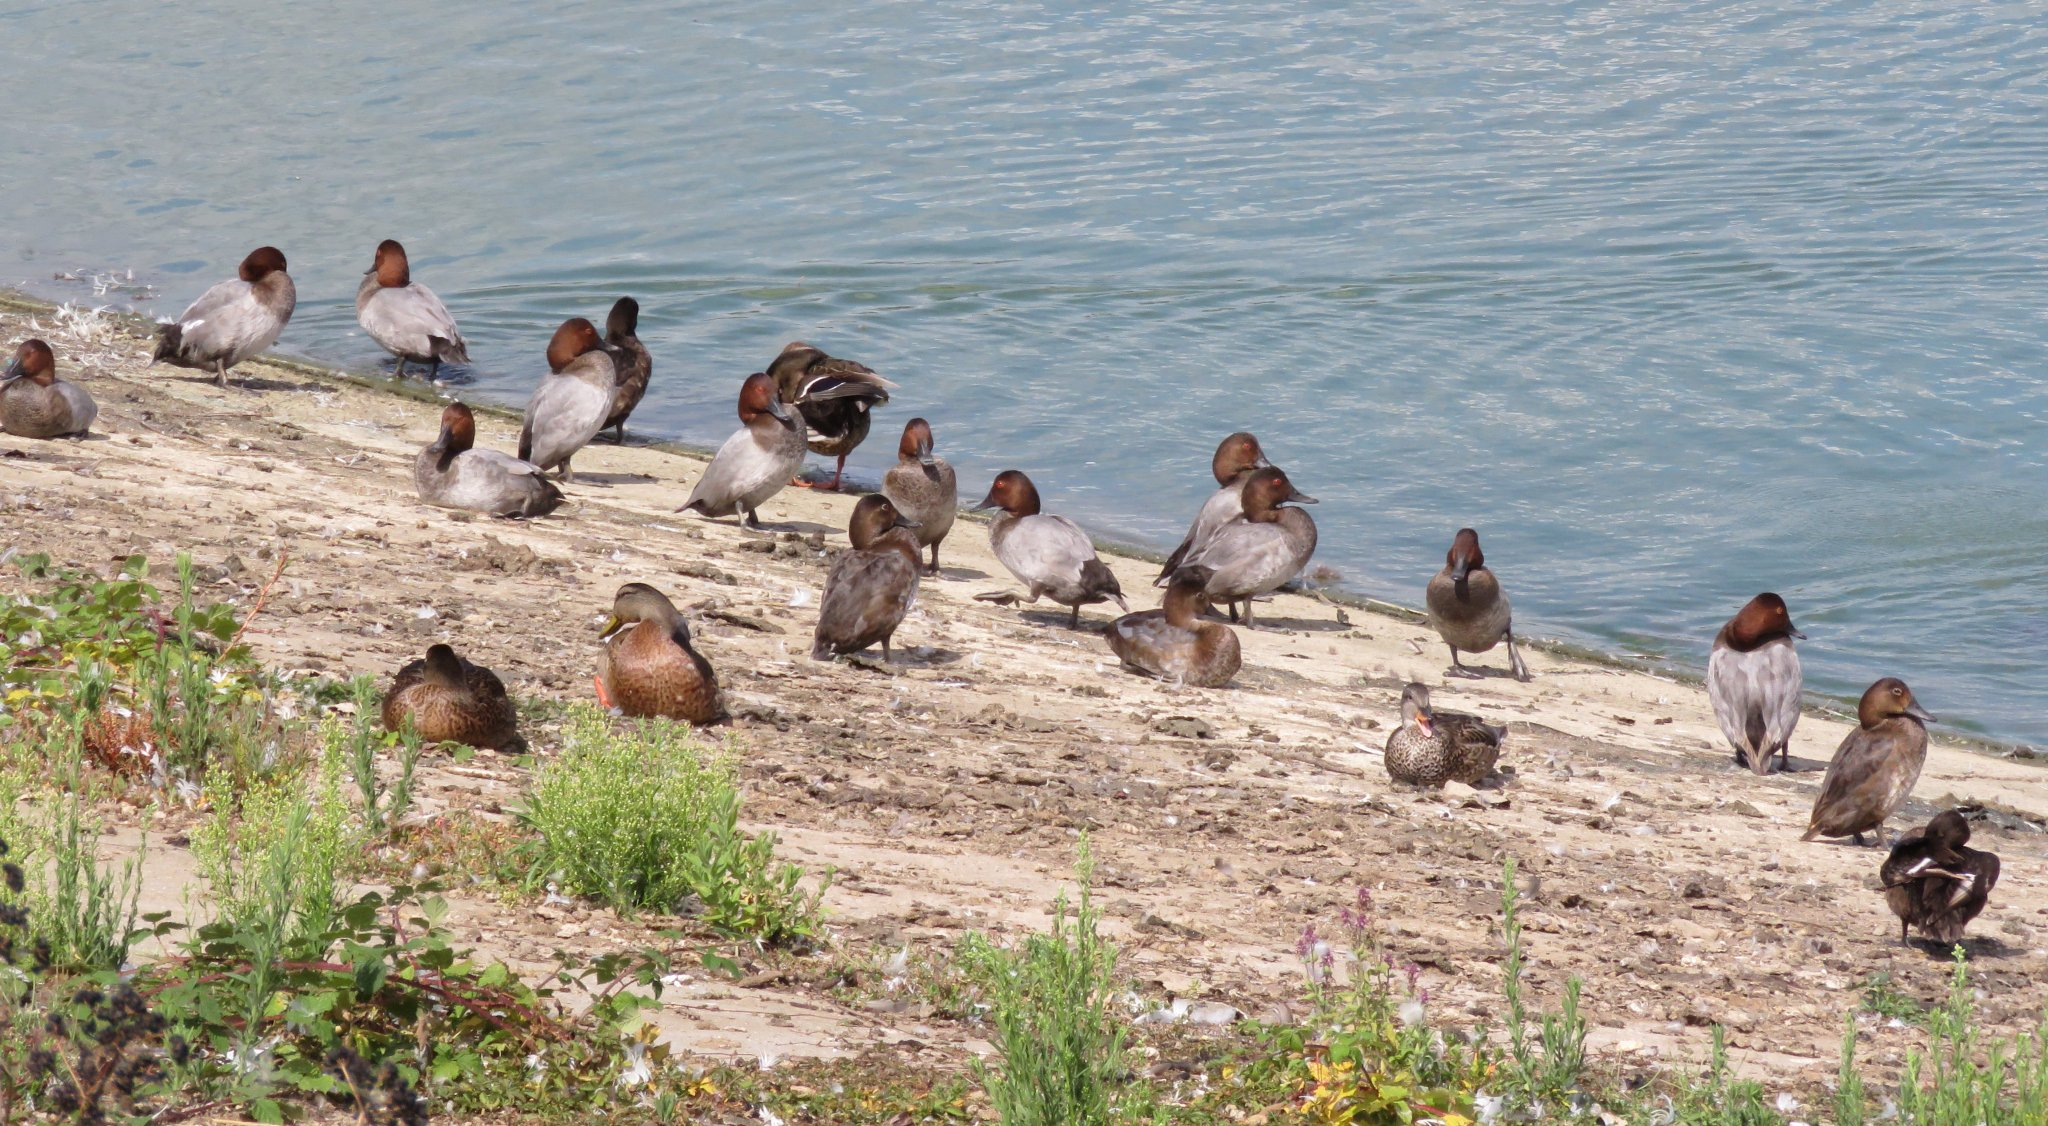 Just shy of a thousand COMMON POCHARD at Abberton today - great to see @birderkettle https://t.co/zmWAGKYGEq